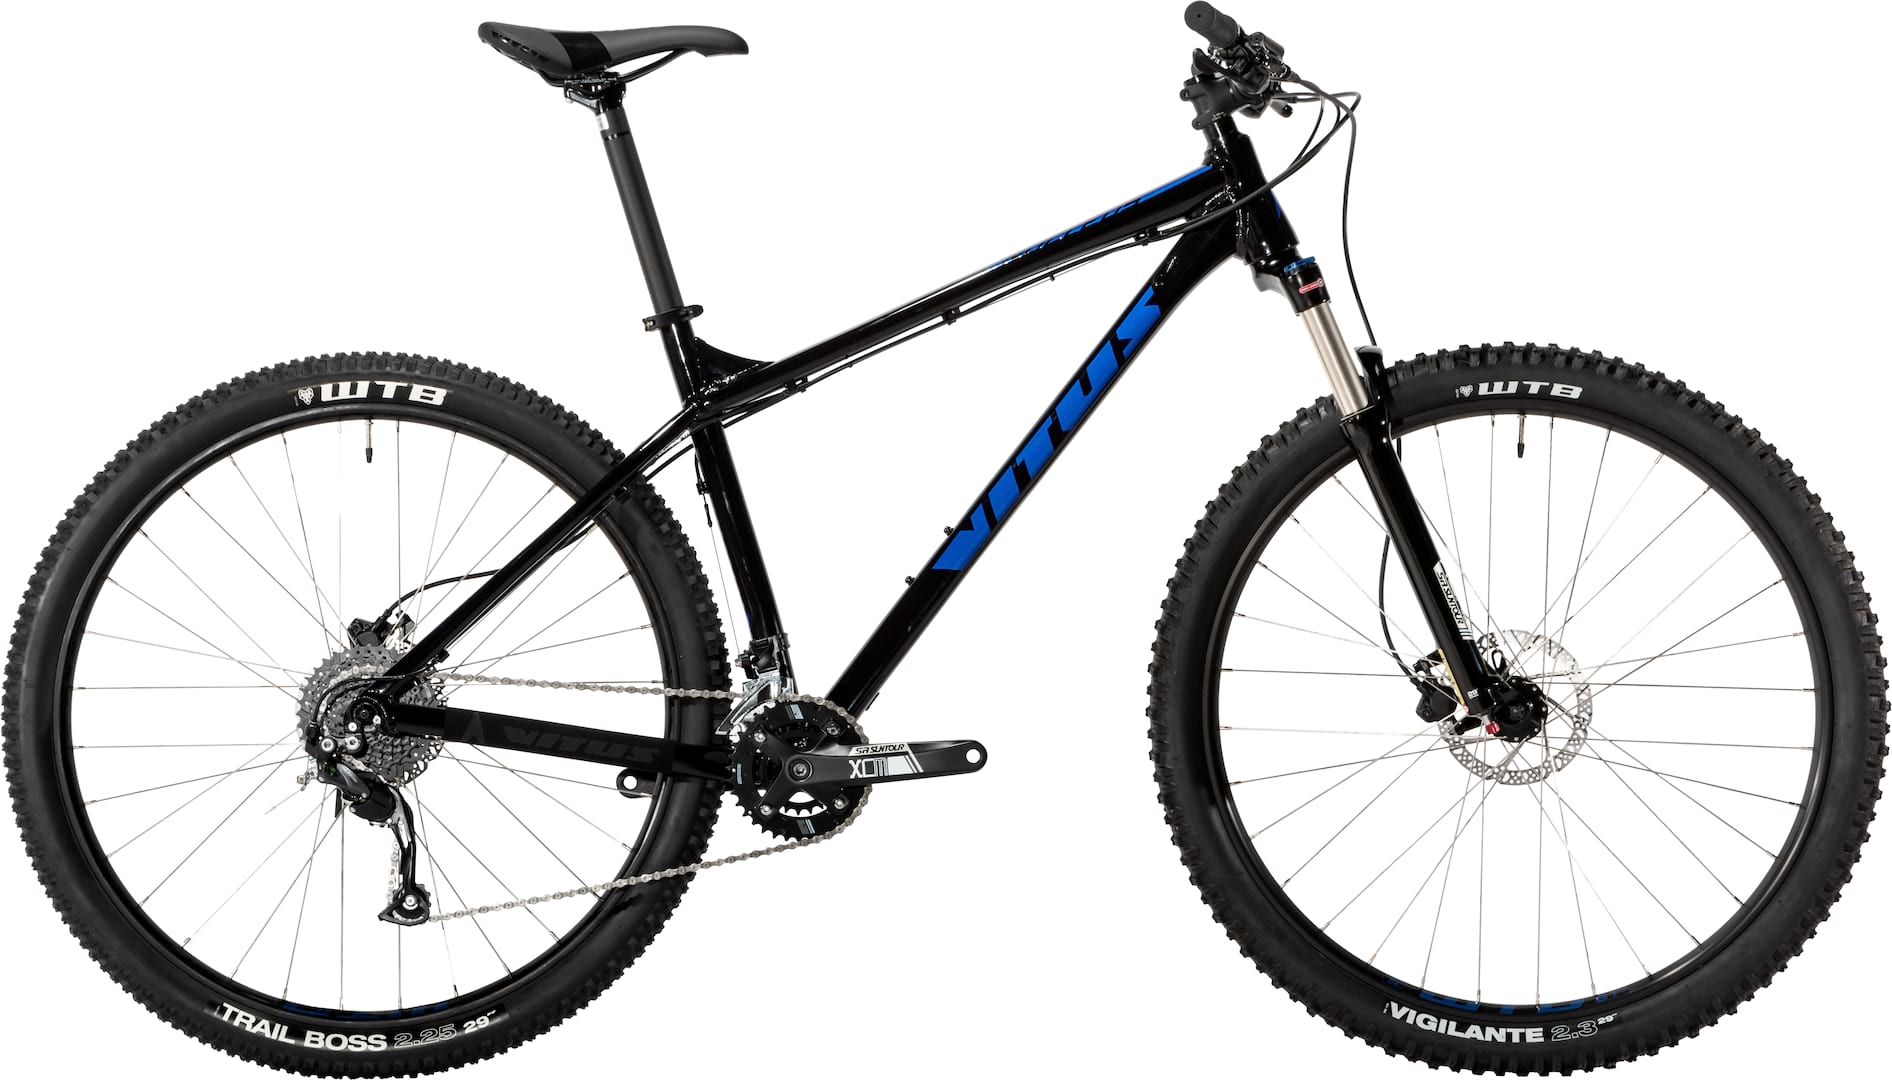 e866d8f8392 2019 Vitus Range Announced - Everything from kids bikes, to Factory ...